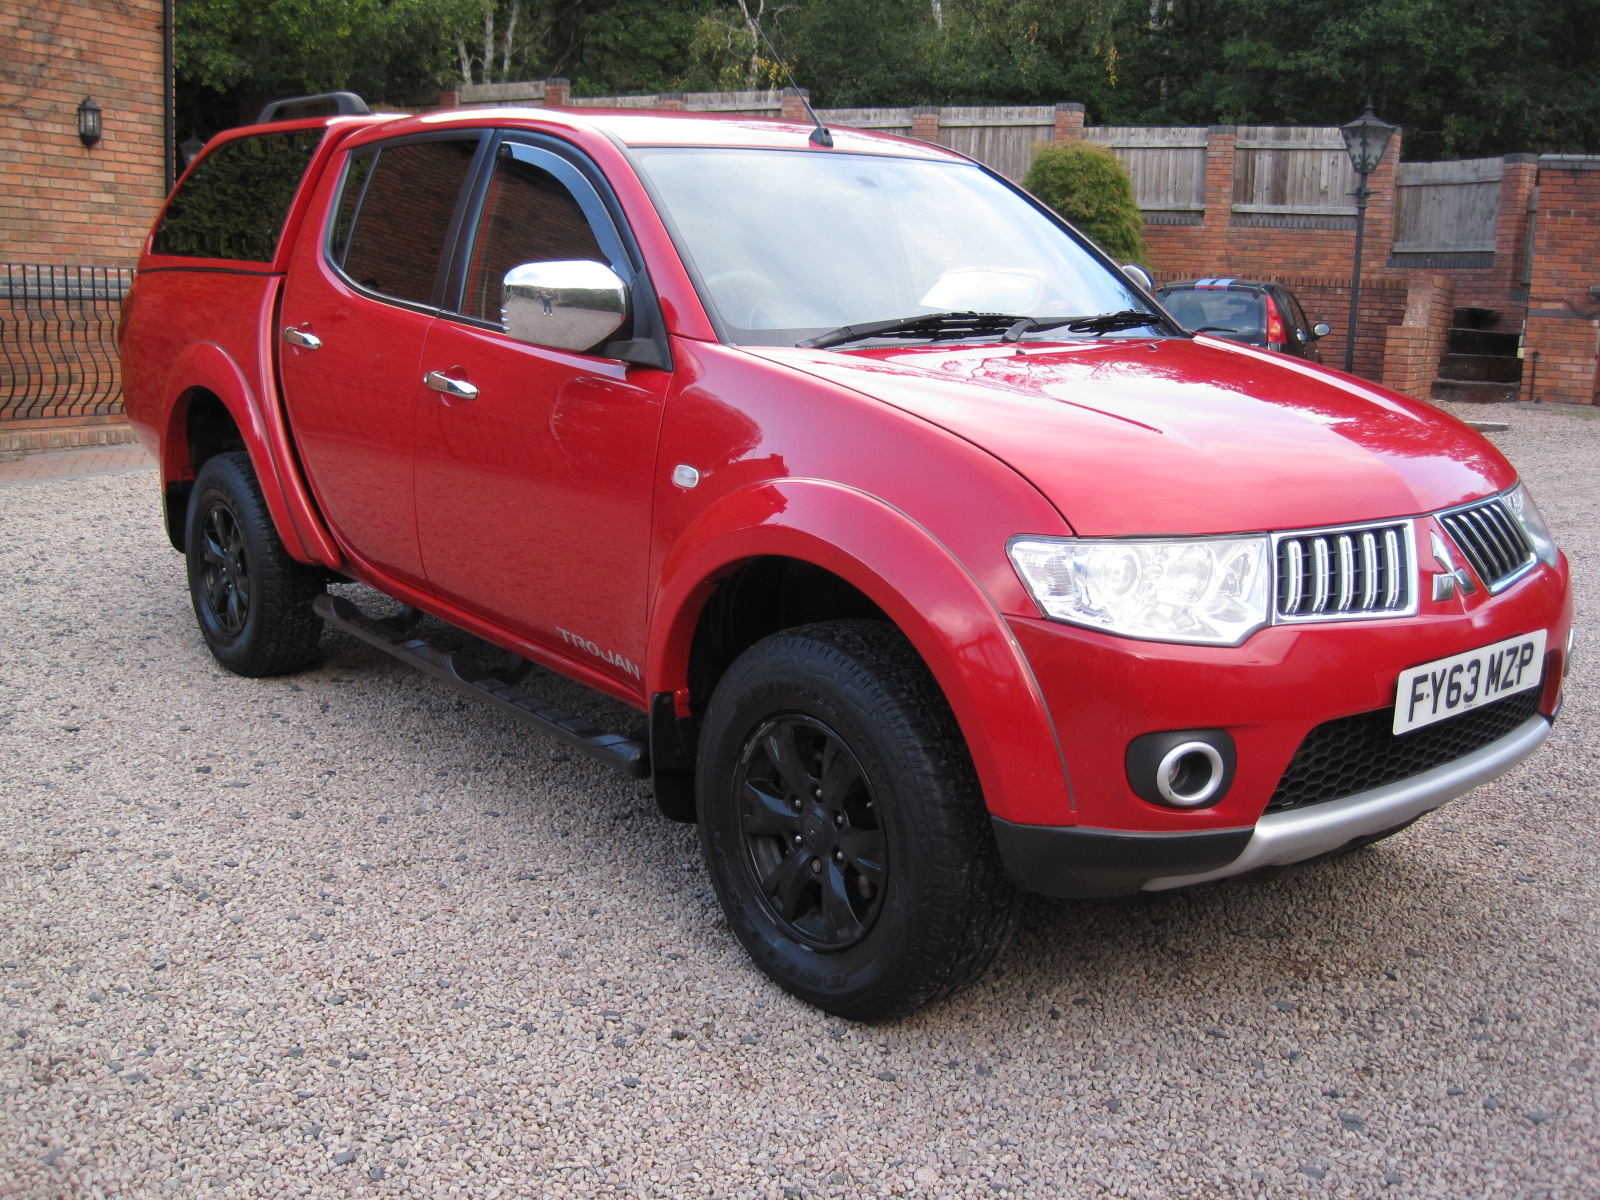 2013 63 Mitsubishi L200 2.5 DI-D Trojan Double Cab 4WD 4dr EXCELLENT CONDITION THROUGHOUT! NO VAT!